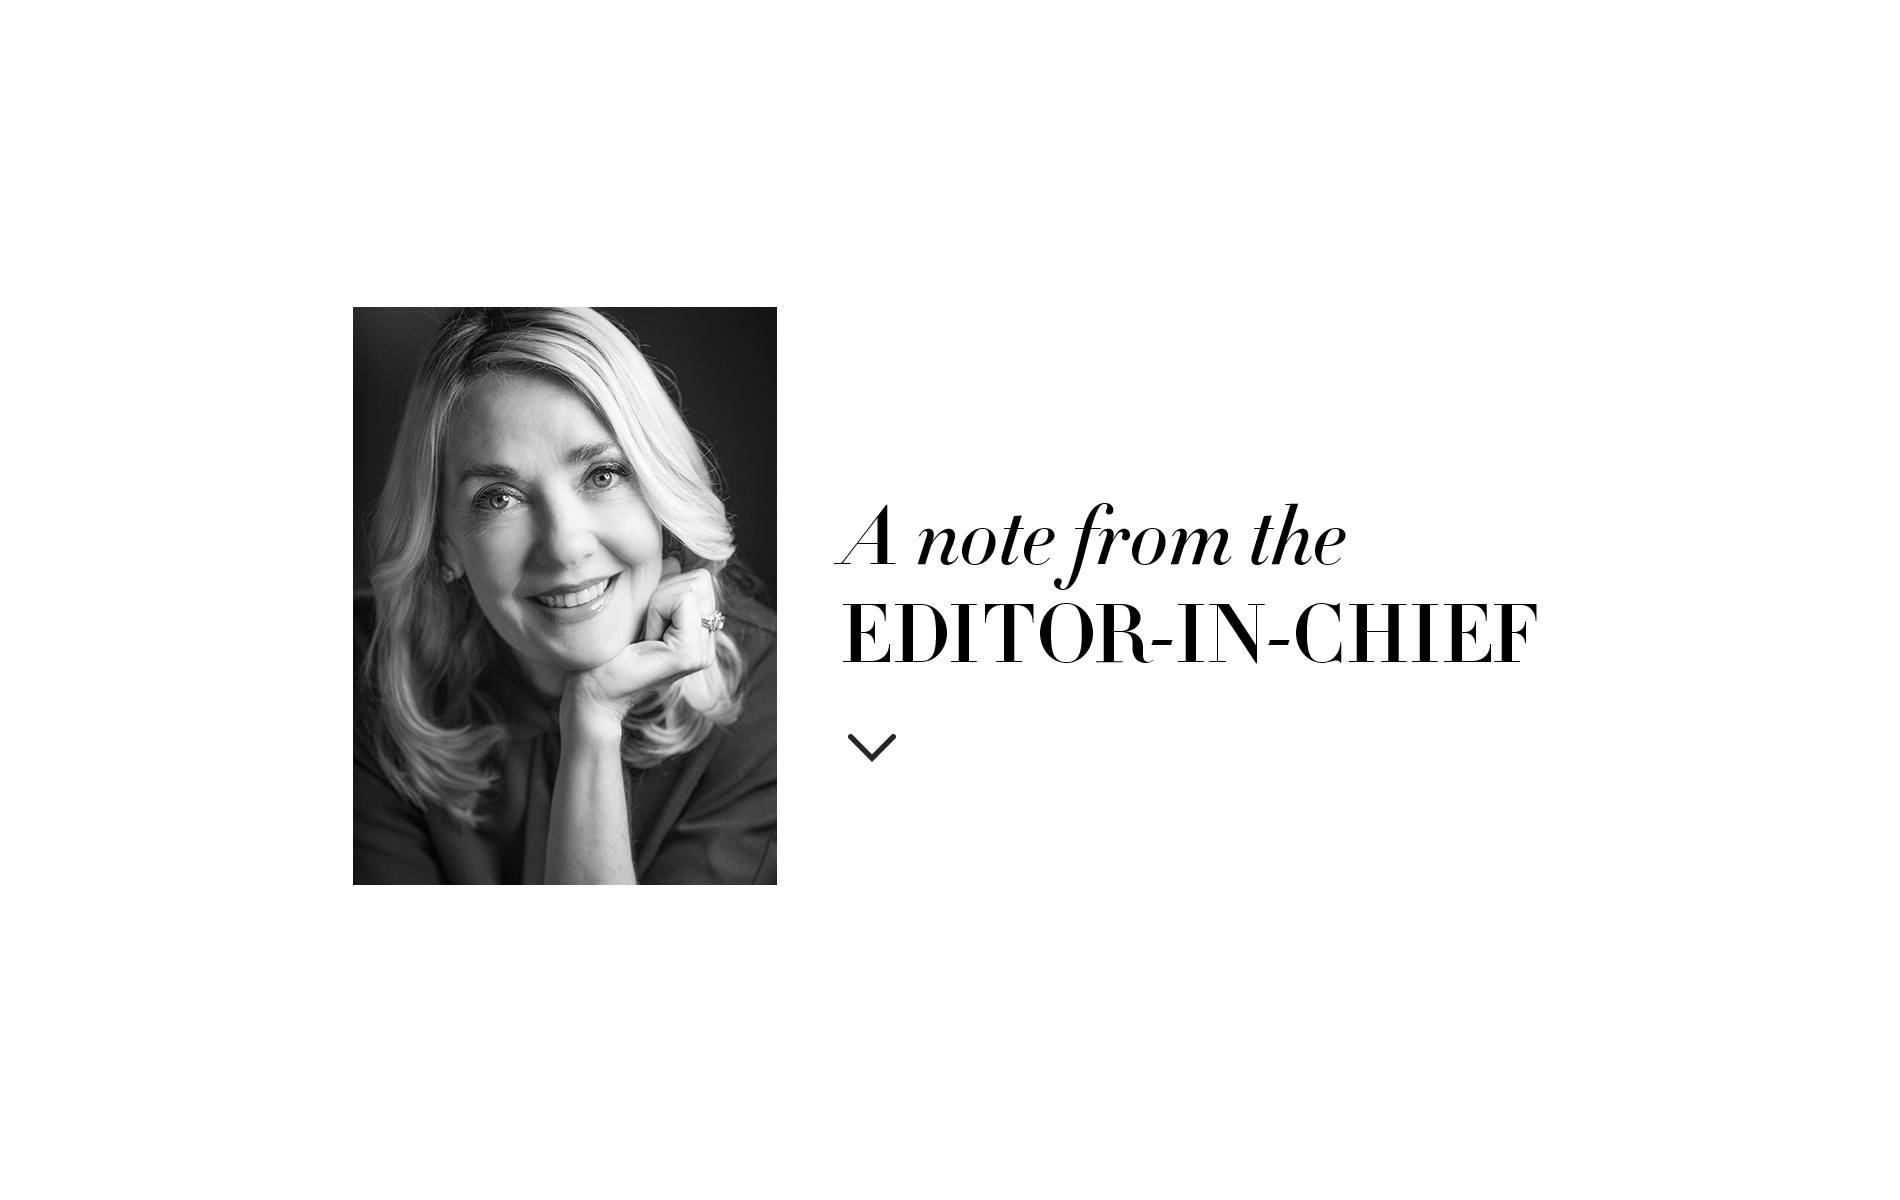 VIE Magazine Editor-In-Chief, Lisa Burwell, July 2017 issue